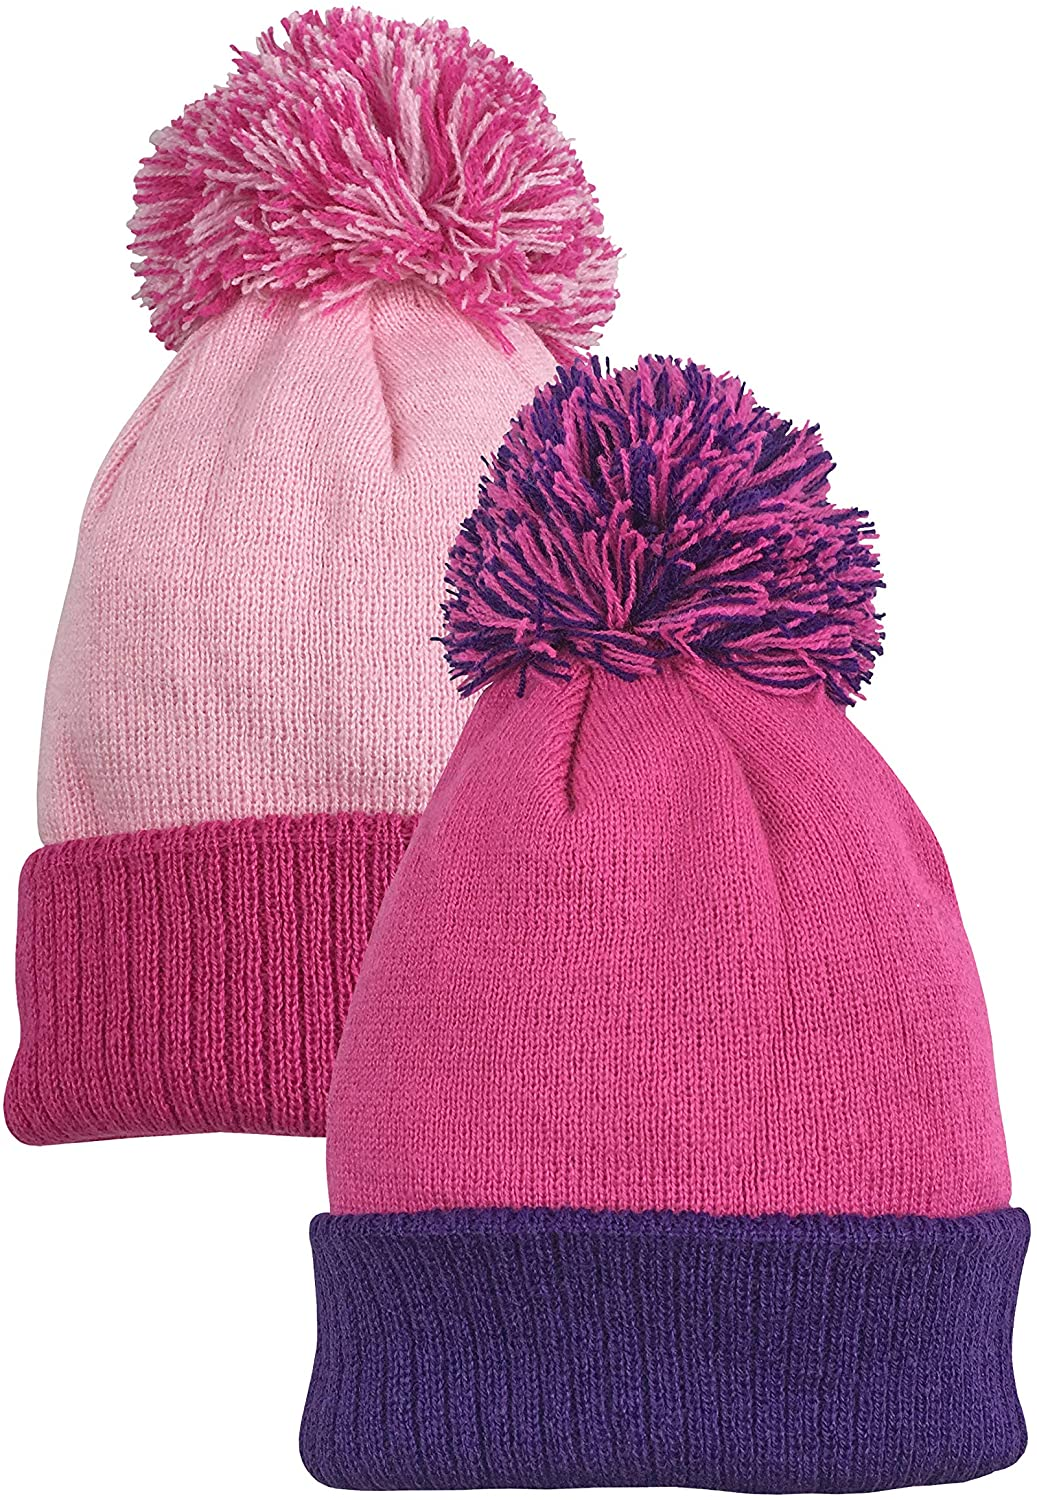 N'Ice Caps Baby Unisex Warm 2 Ply Knit Beanies with Poms - 2 Hat Pack